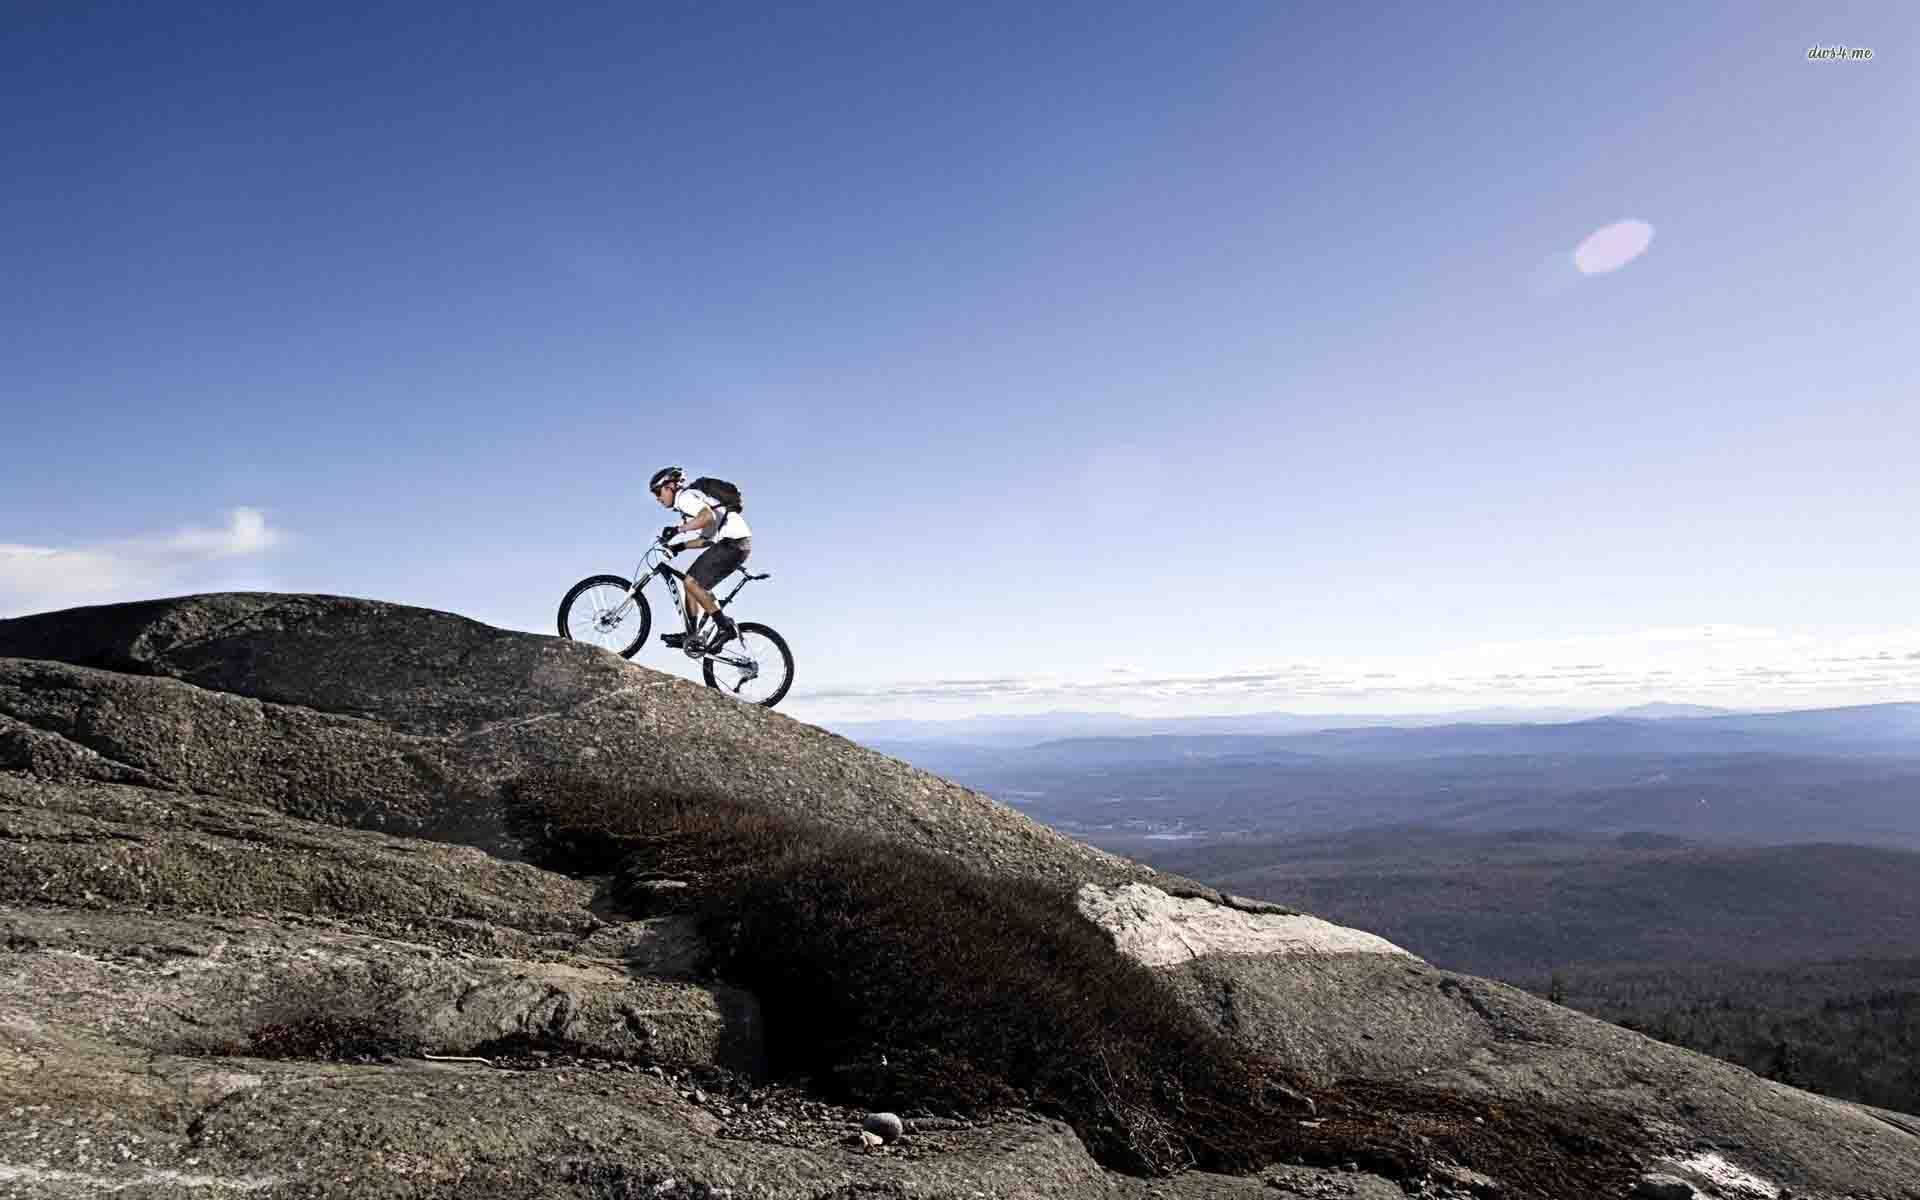 Mountain Bike Hd Wallpapers Is The Others Category Wallpaper You